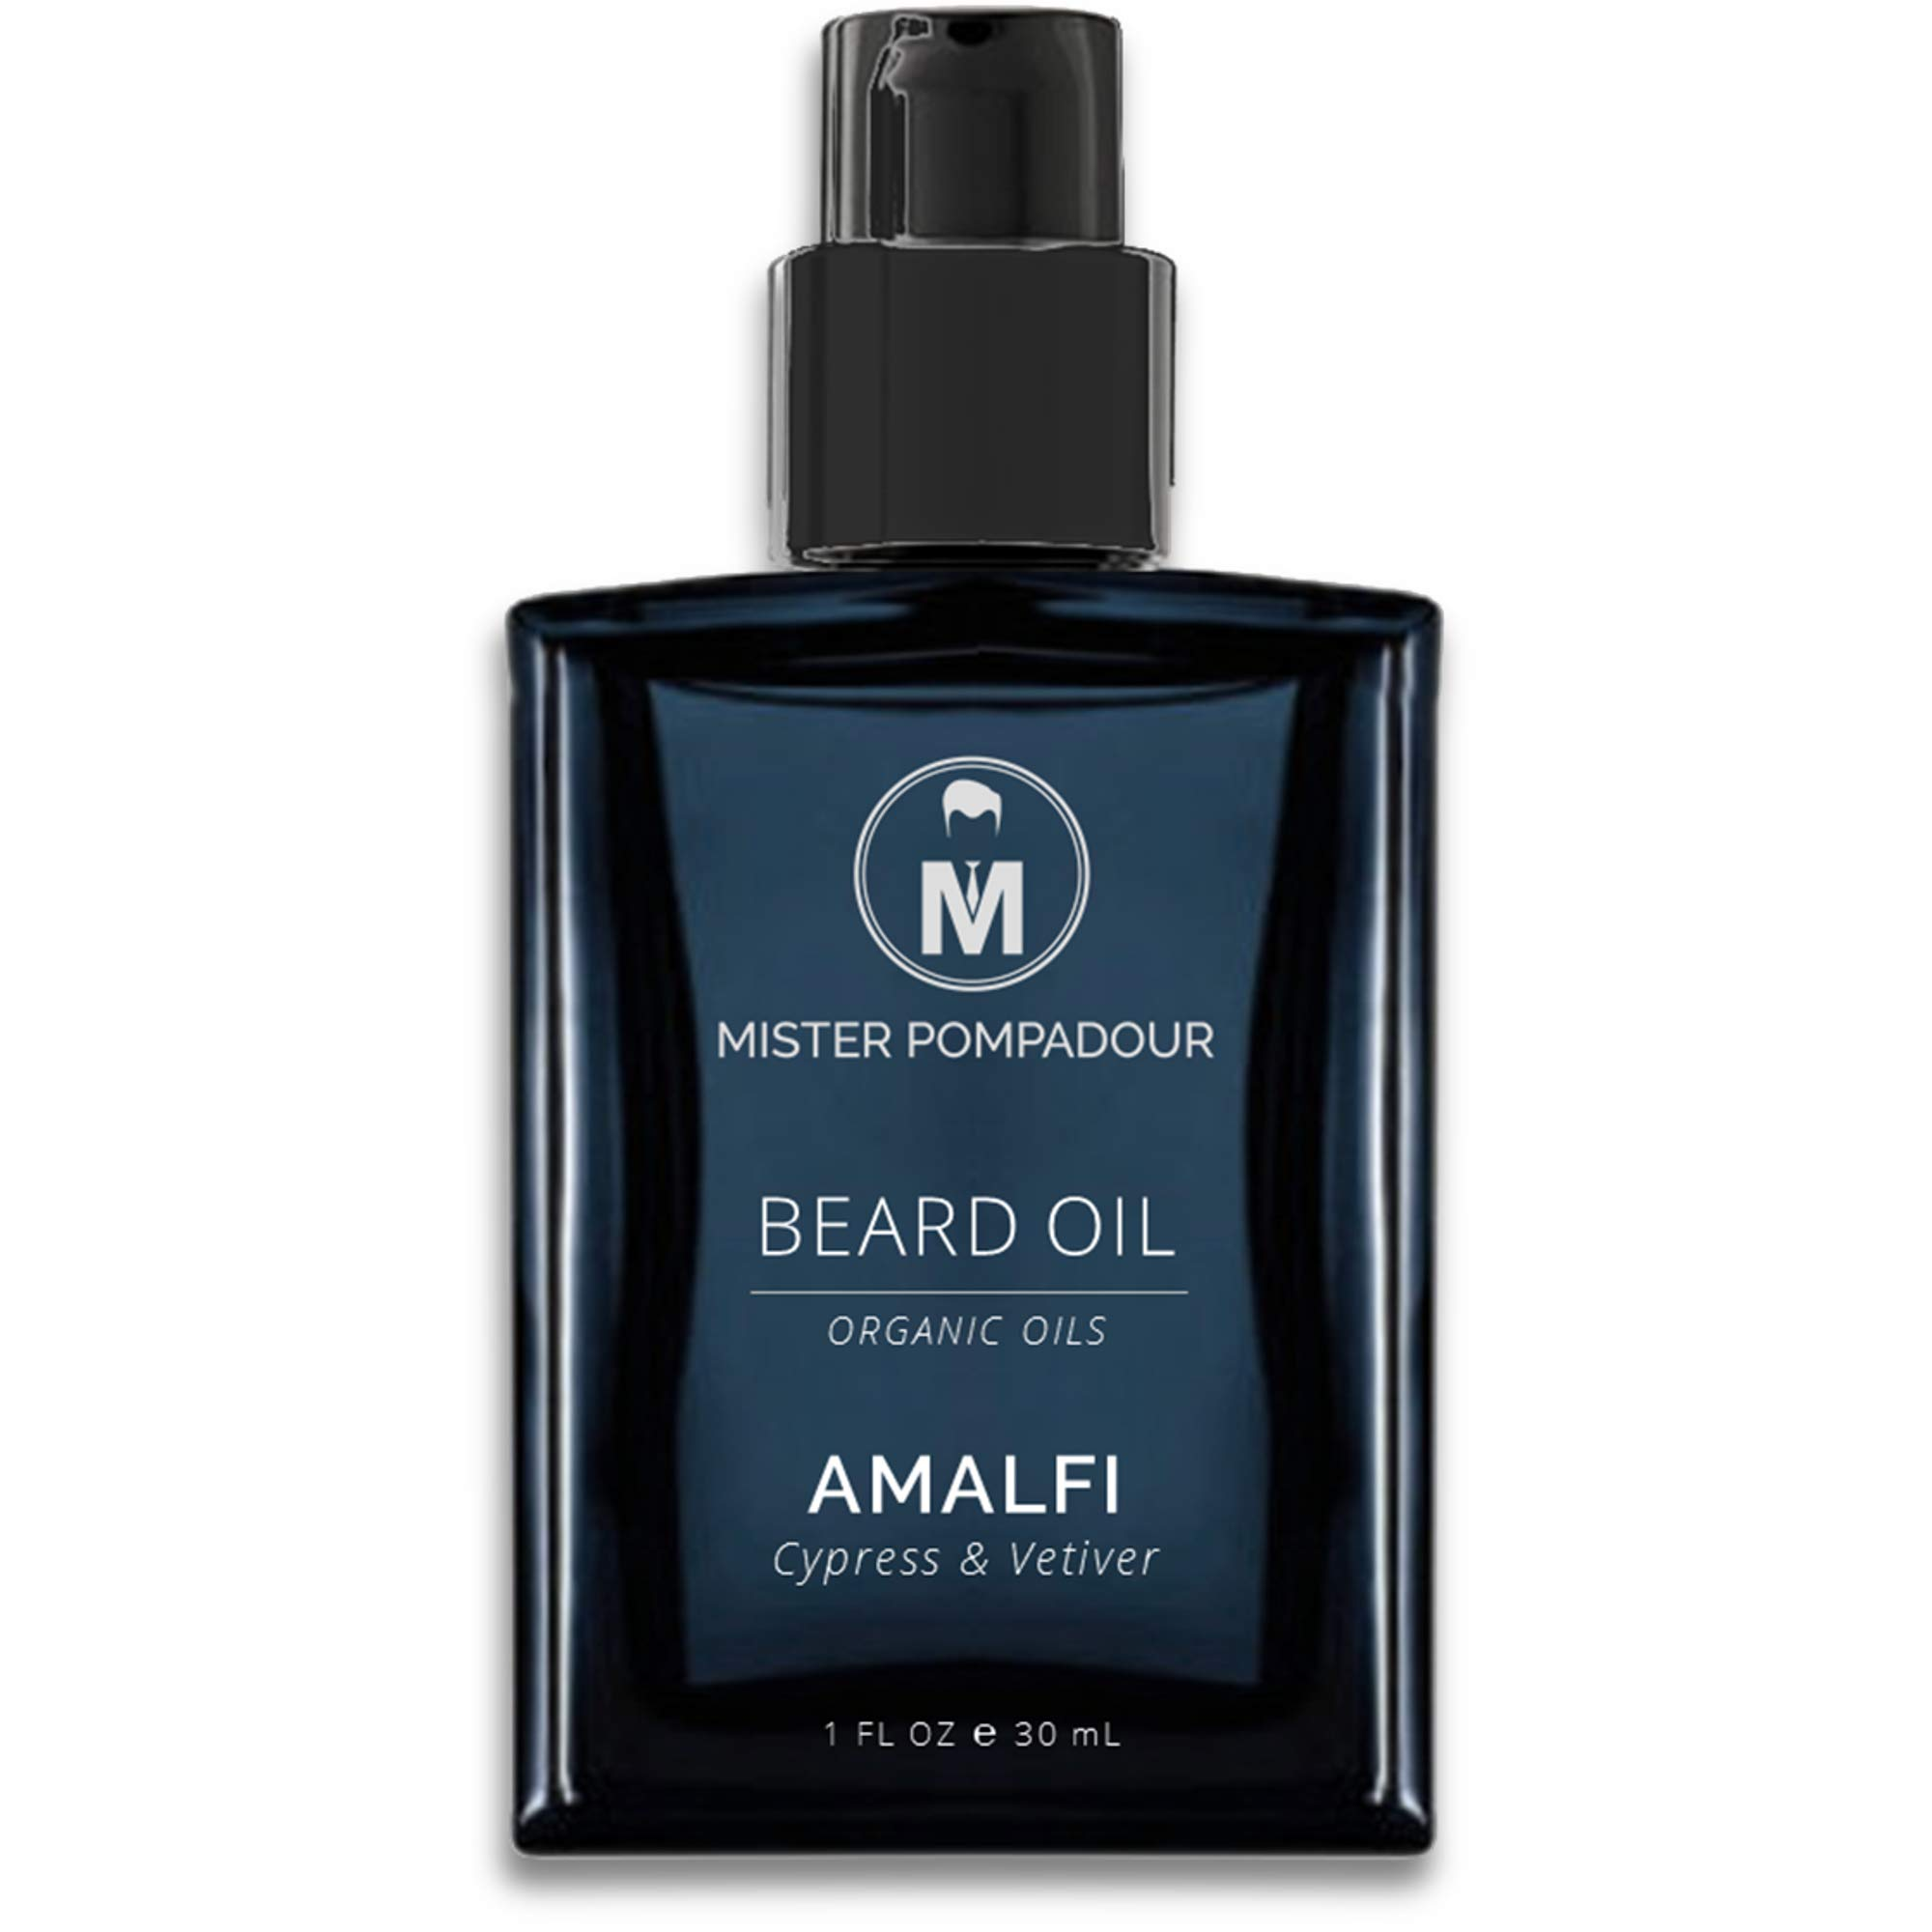 Mister Pompadour - AMALFI Beard Oil - with Natural Certified Organic Oils to Soften and Condition Beards & Mustaches